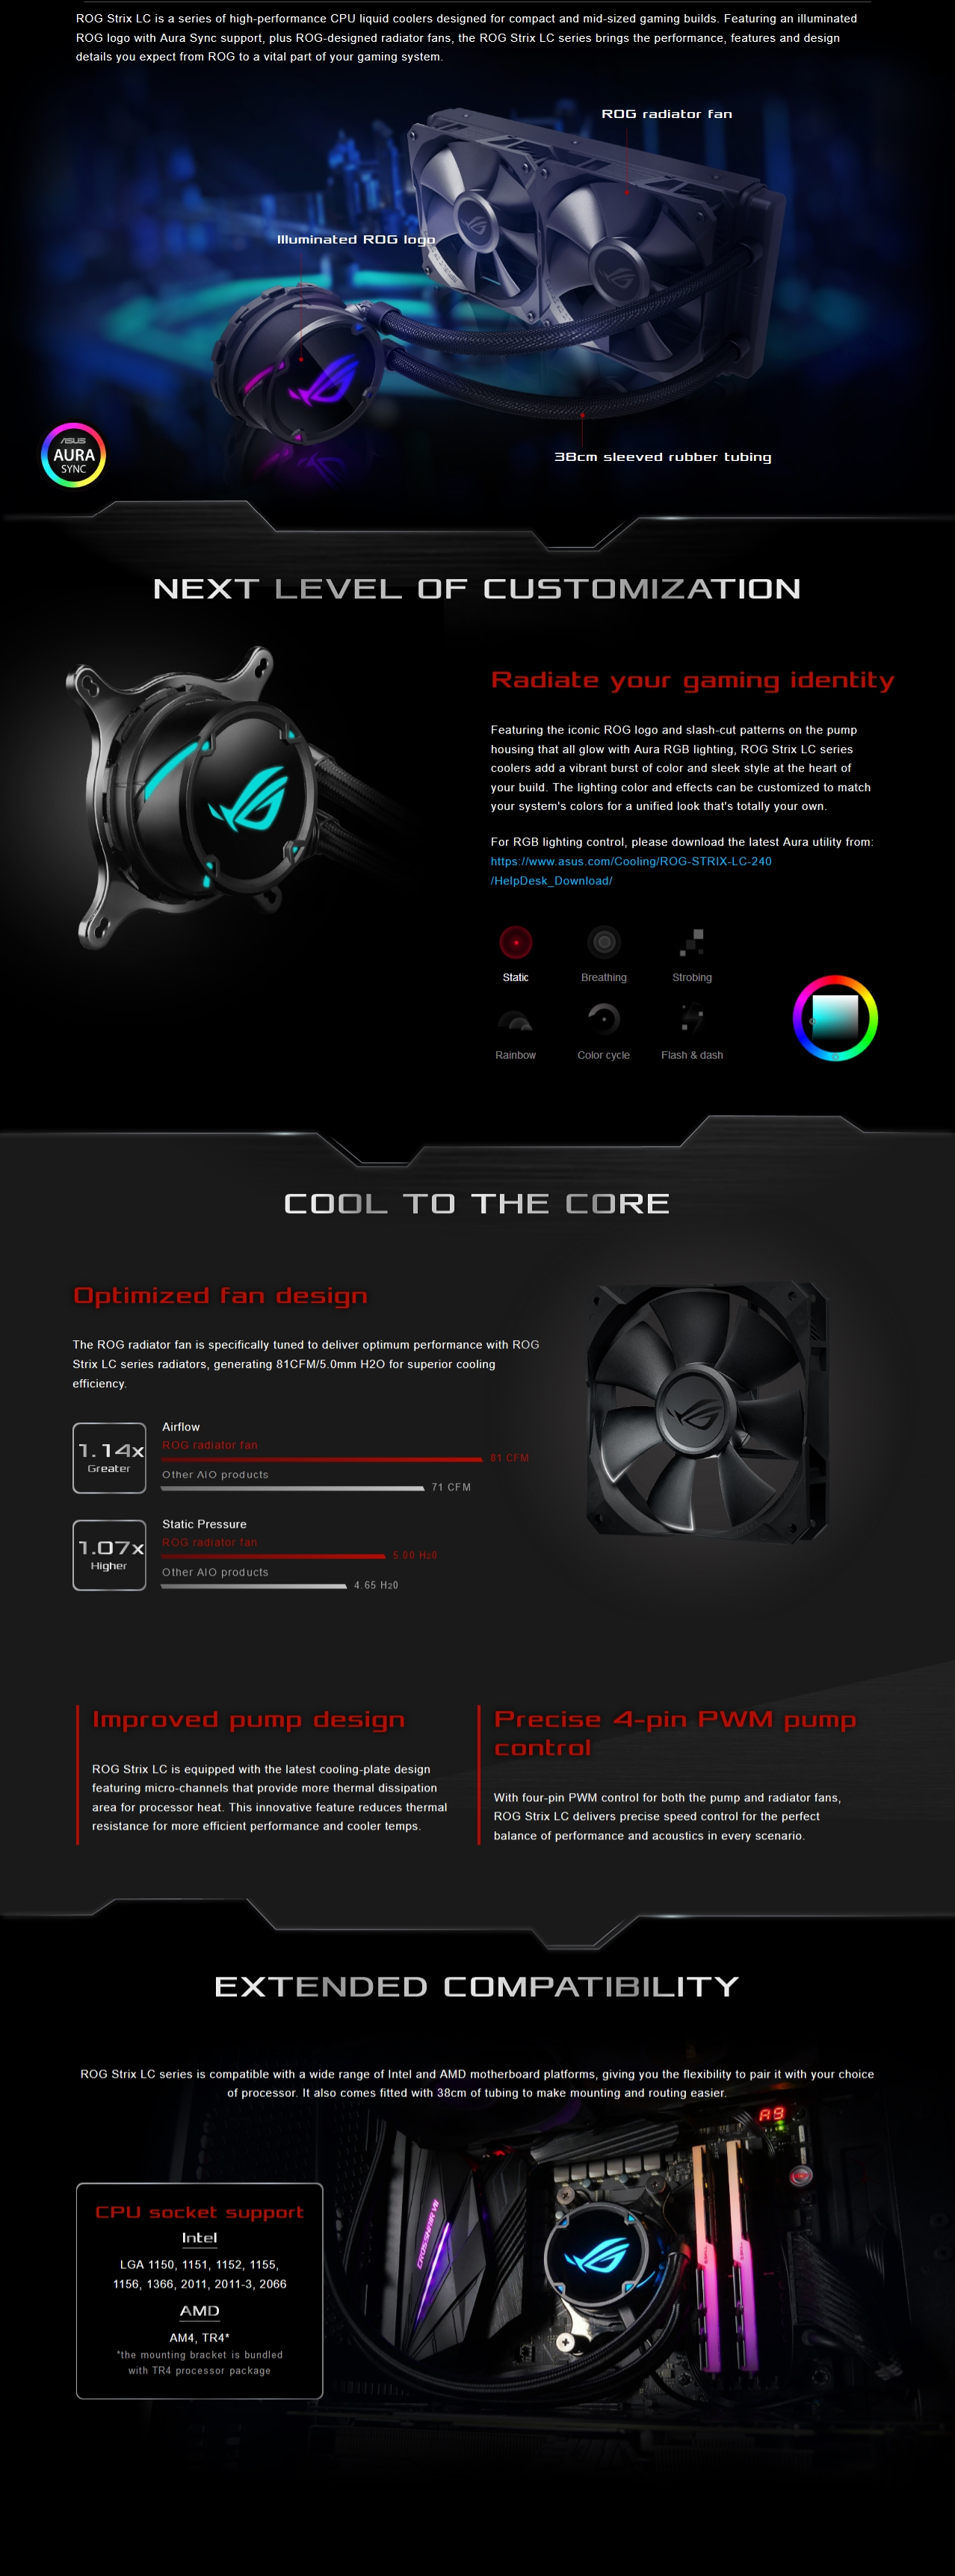 A large marketing image providing additional information about the product ASUS ROG Strix LC 240mm AIO Liquid Cooler - Additional alt info not provided